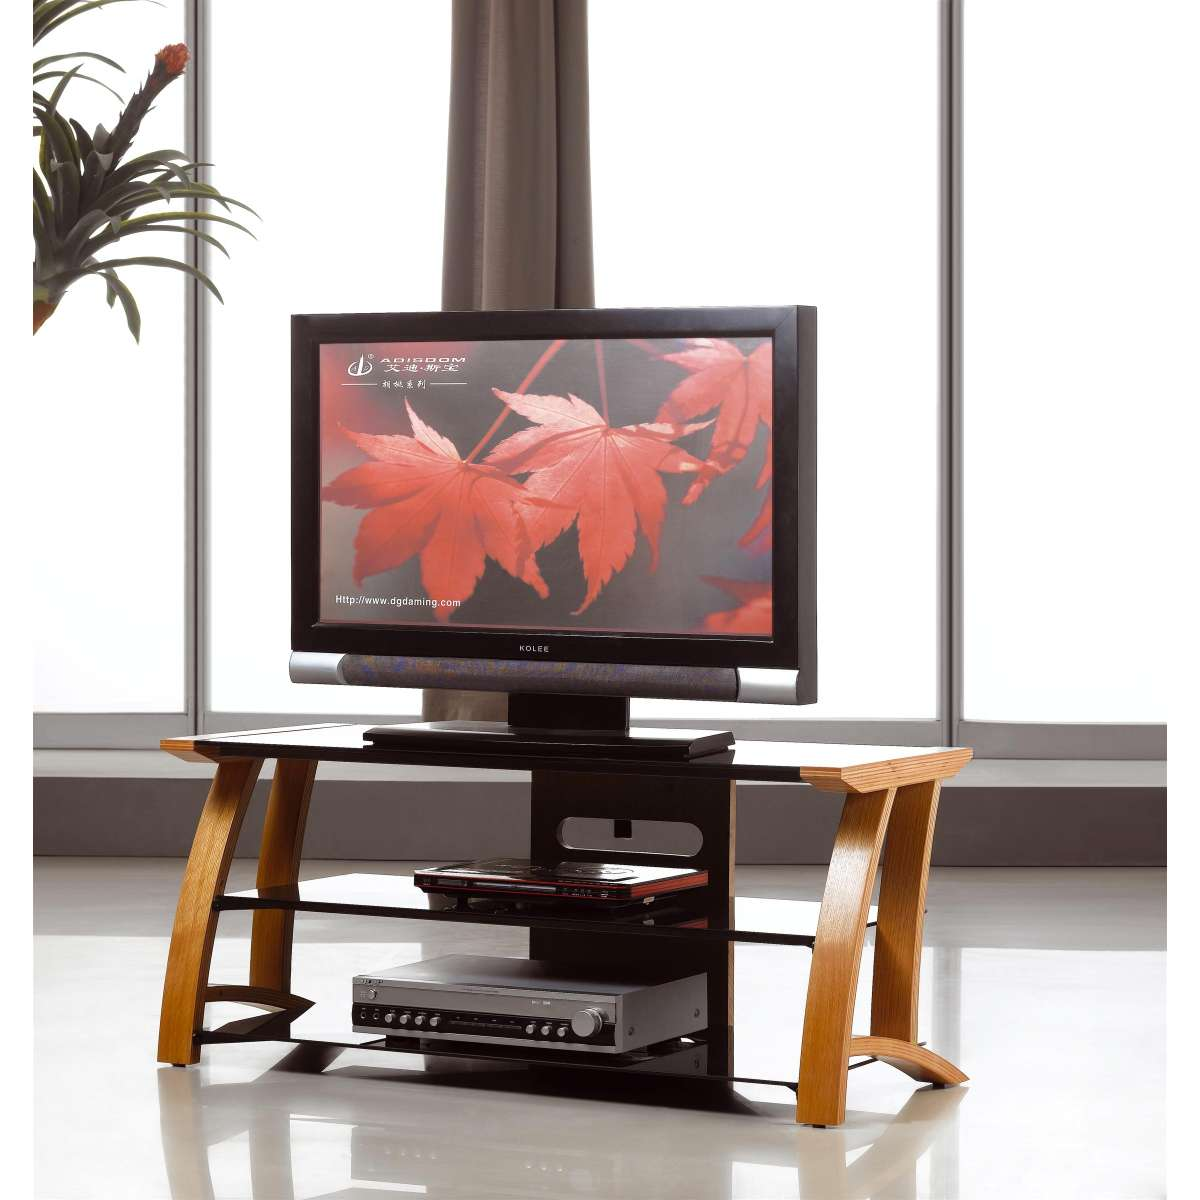 oak tv stand black glass shelves flat screen 32 42 ebay. Black Bedroom Furniture Sets. Home Design Ideas